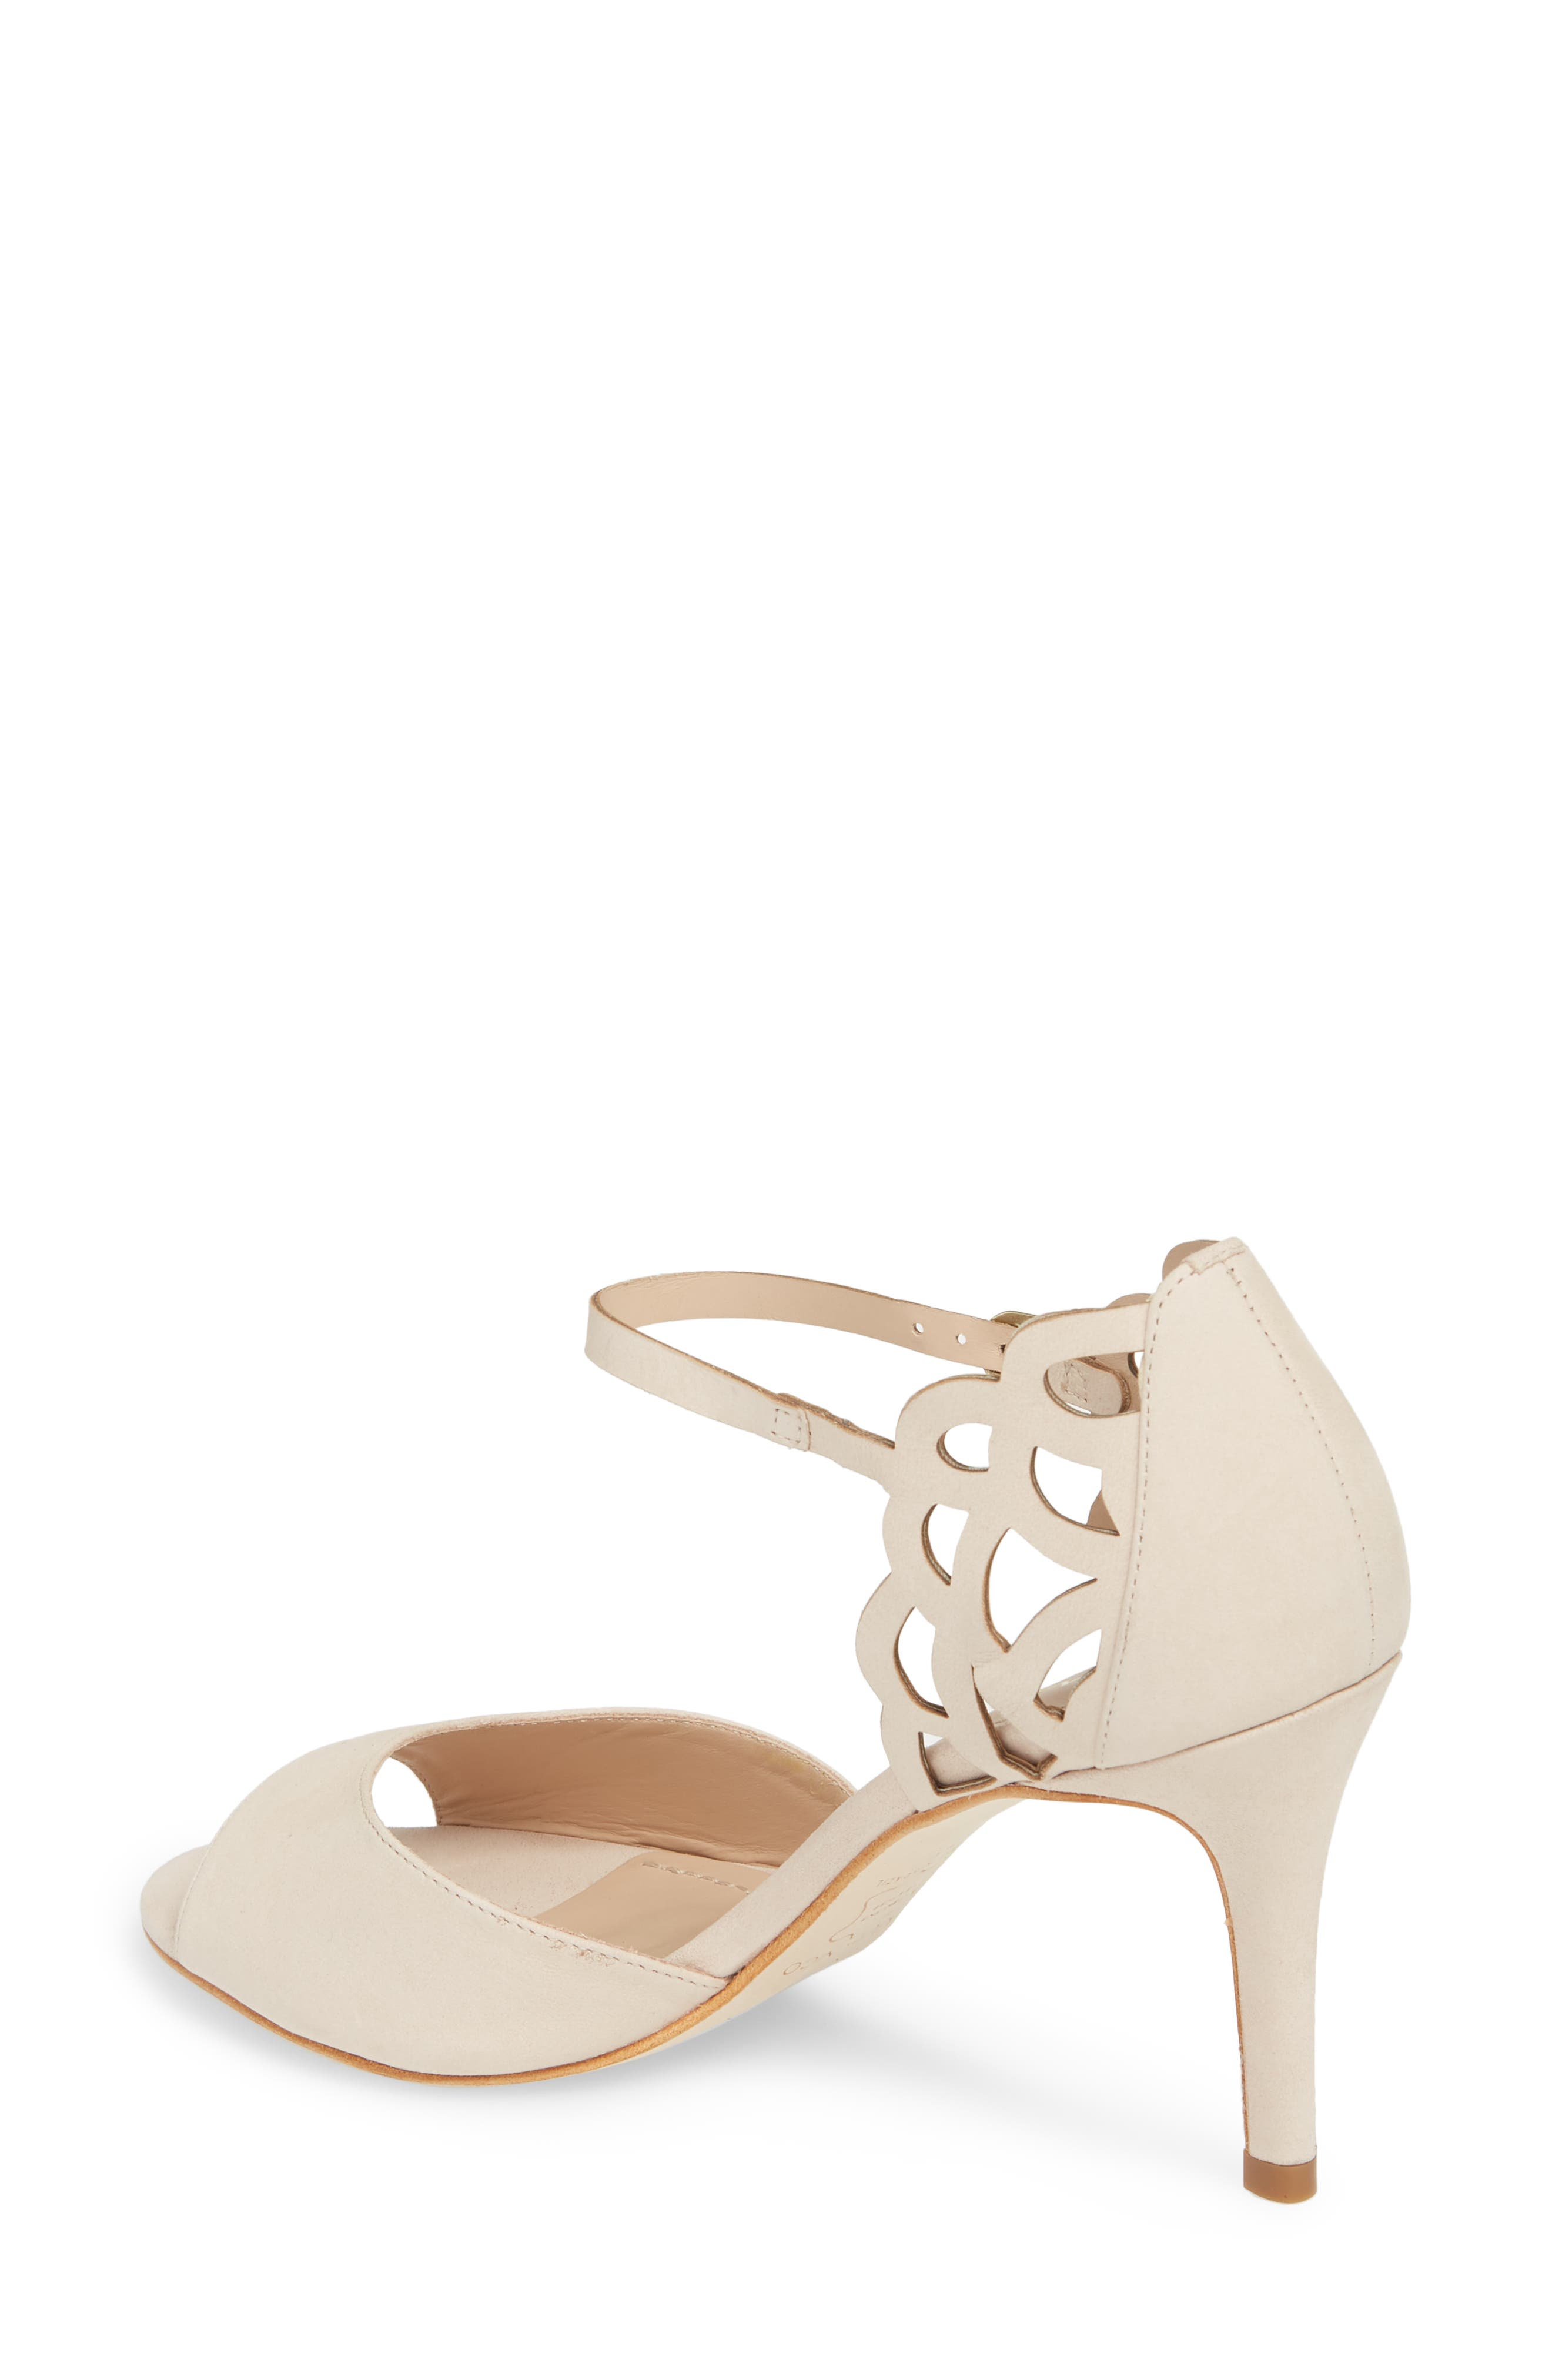 Adalie Sandal,                             Alternate thumbnail 2, color,                             Nude Leather